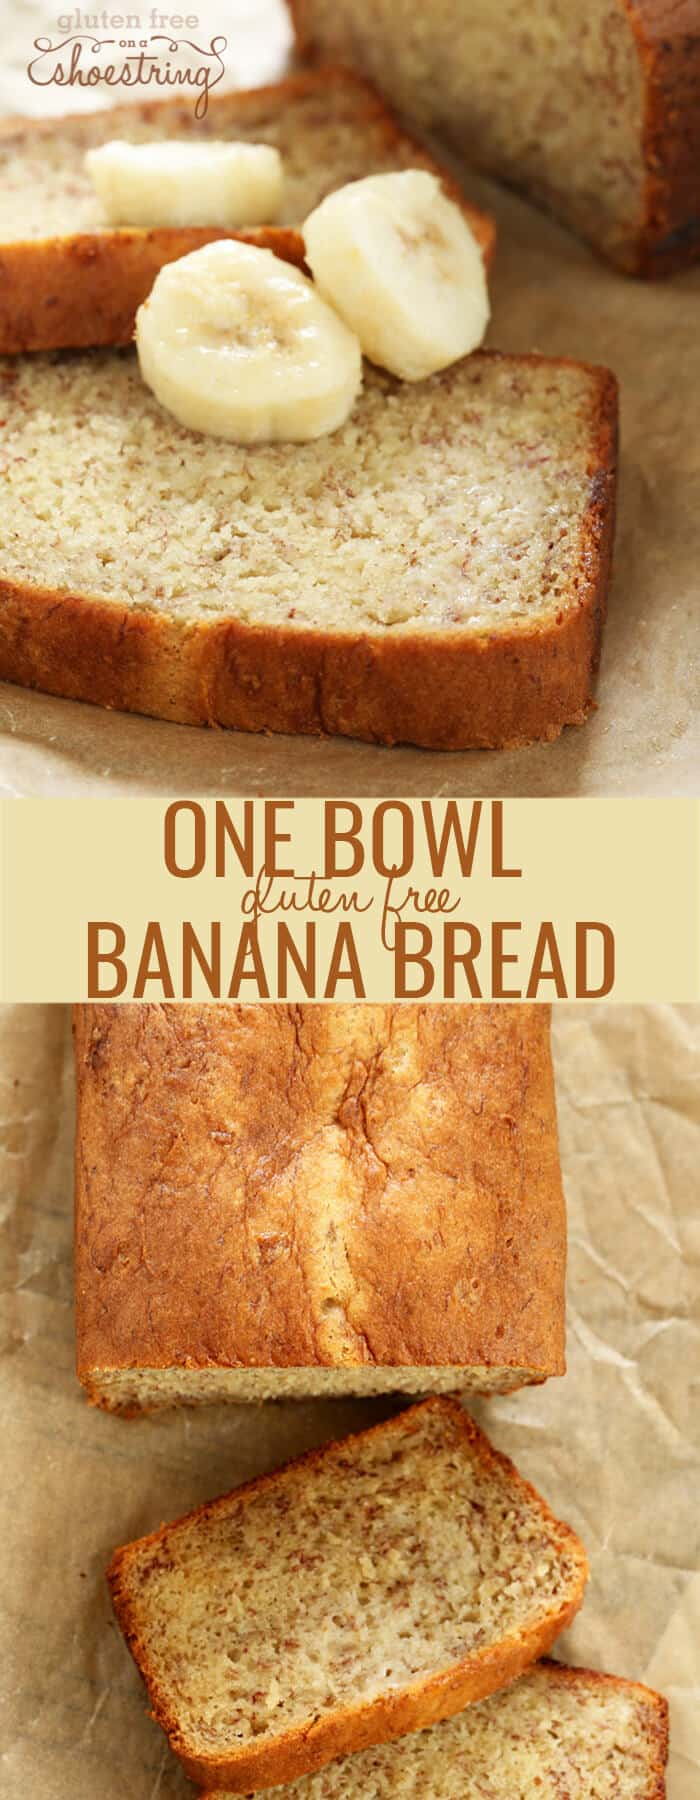 Overhead image of gluten free banana bread in a loaf and in slices